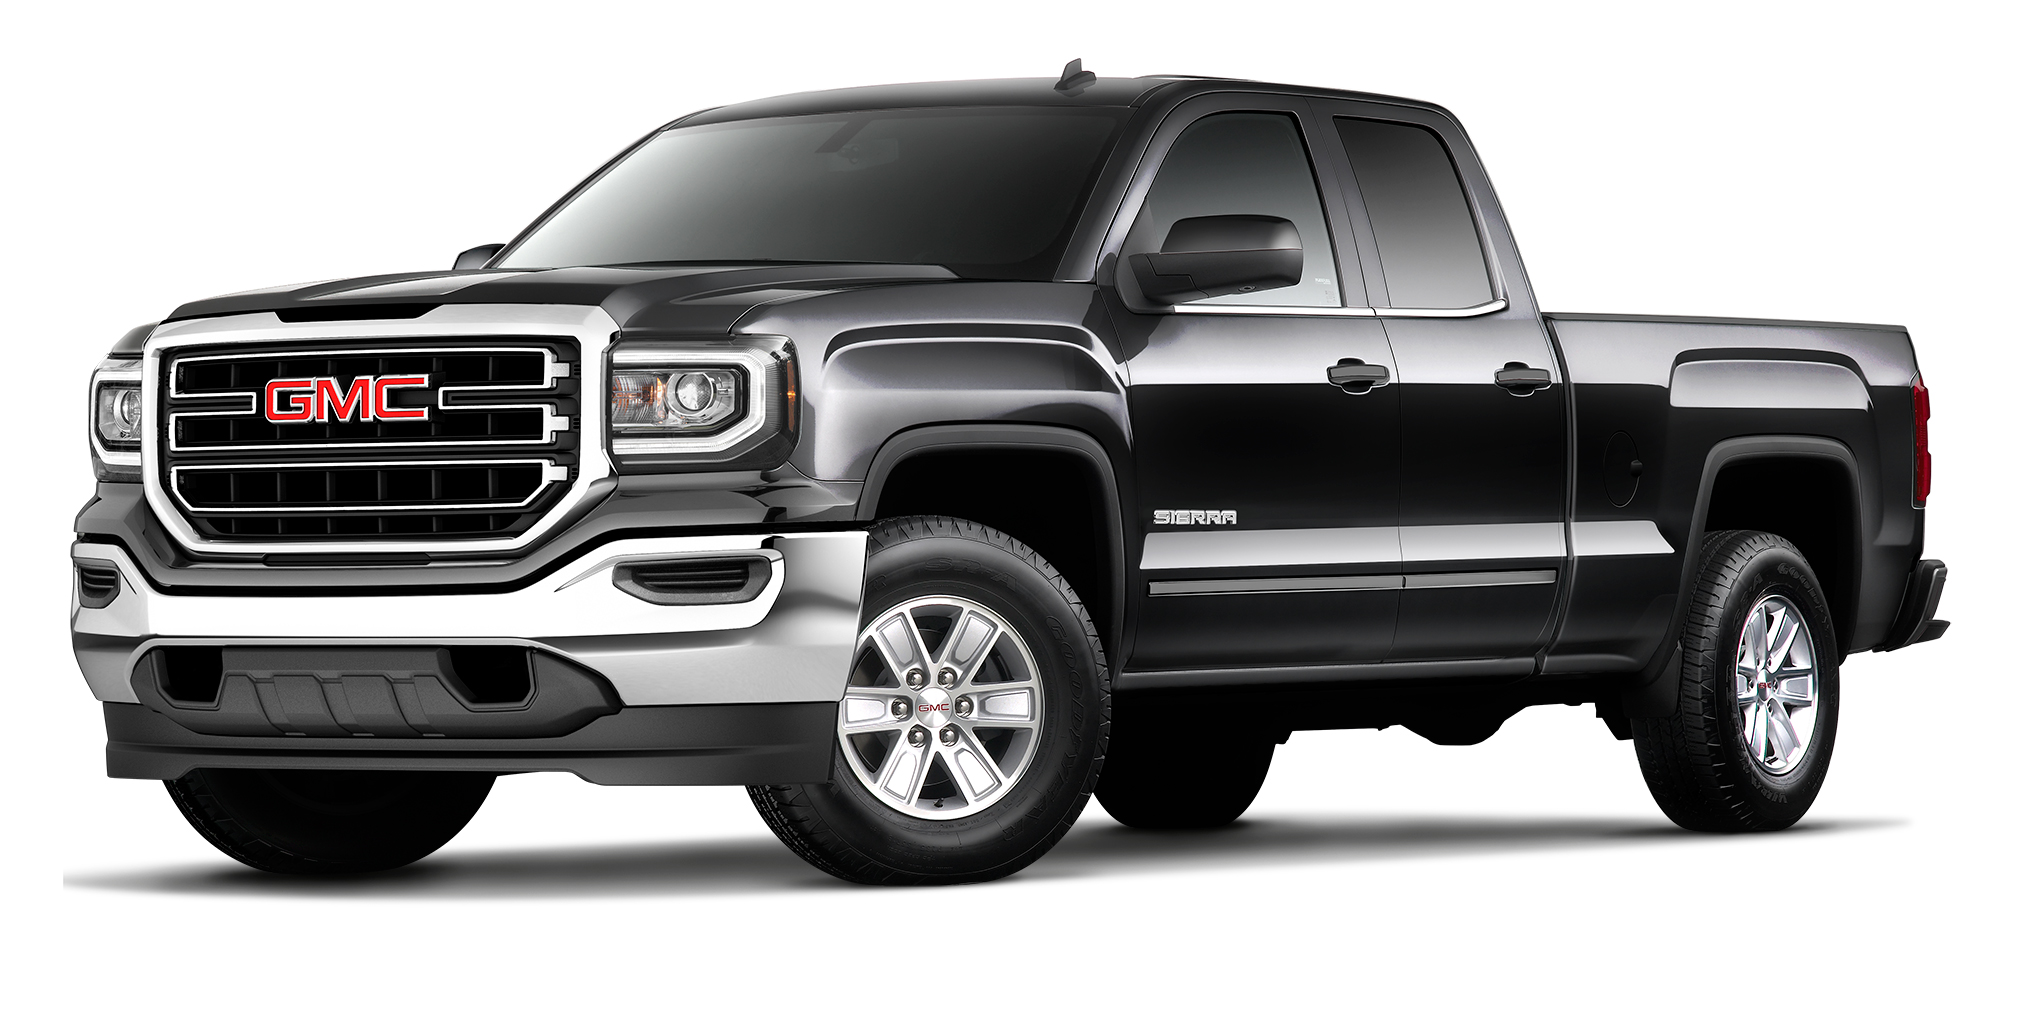 2017 GMC Sierra 1500 Black Winnipeg